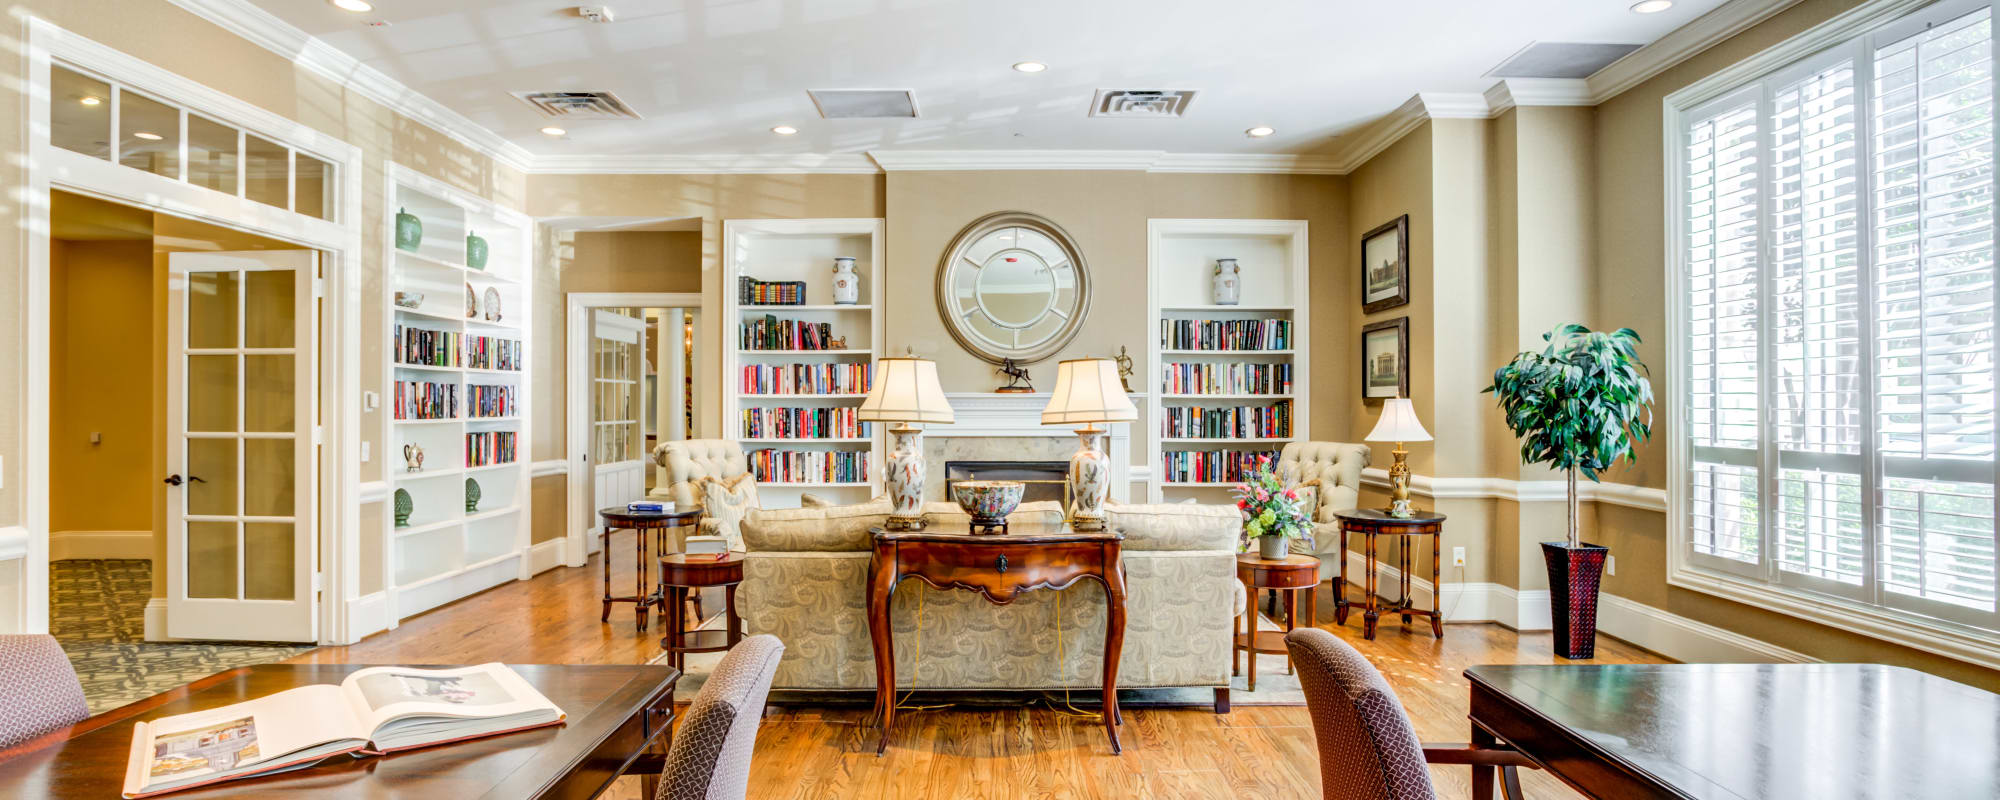 Living Options at The Village of Tanglewood in Houston, Texas